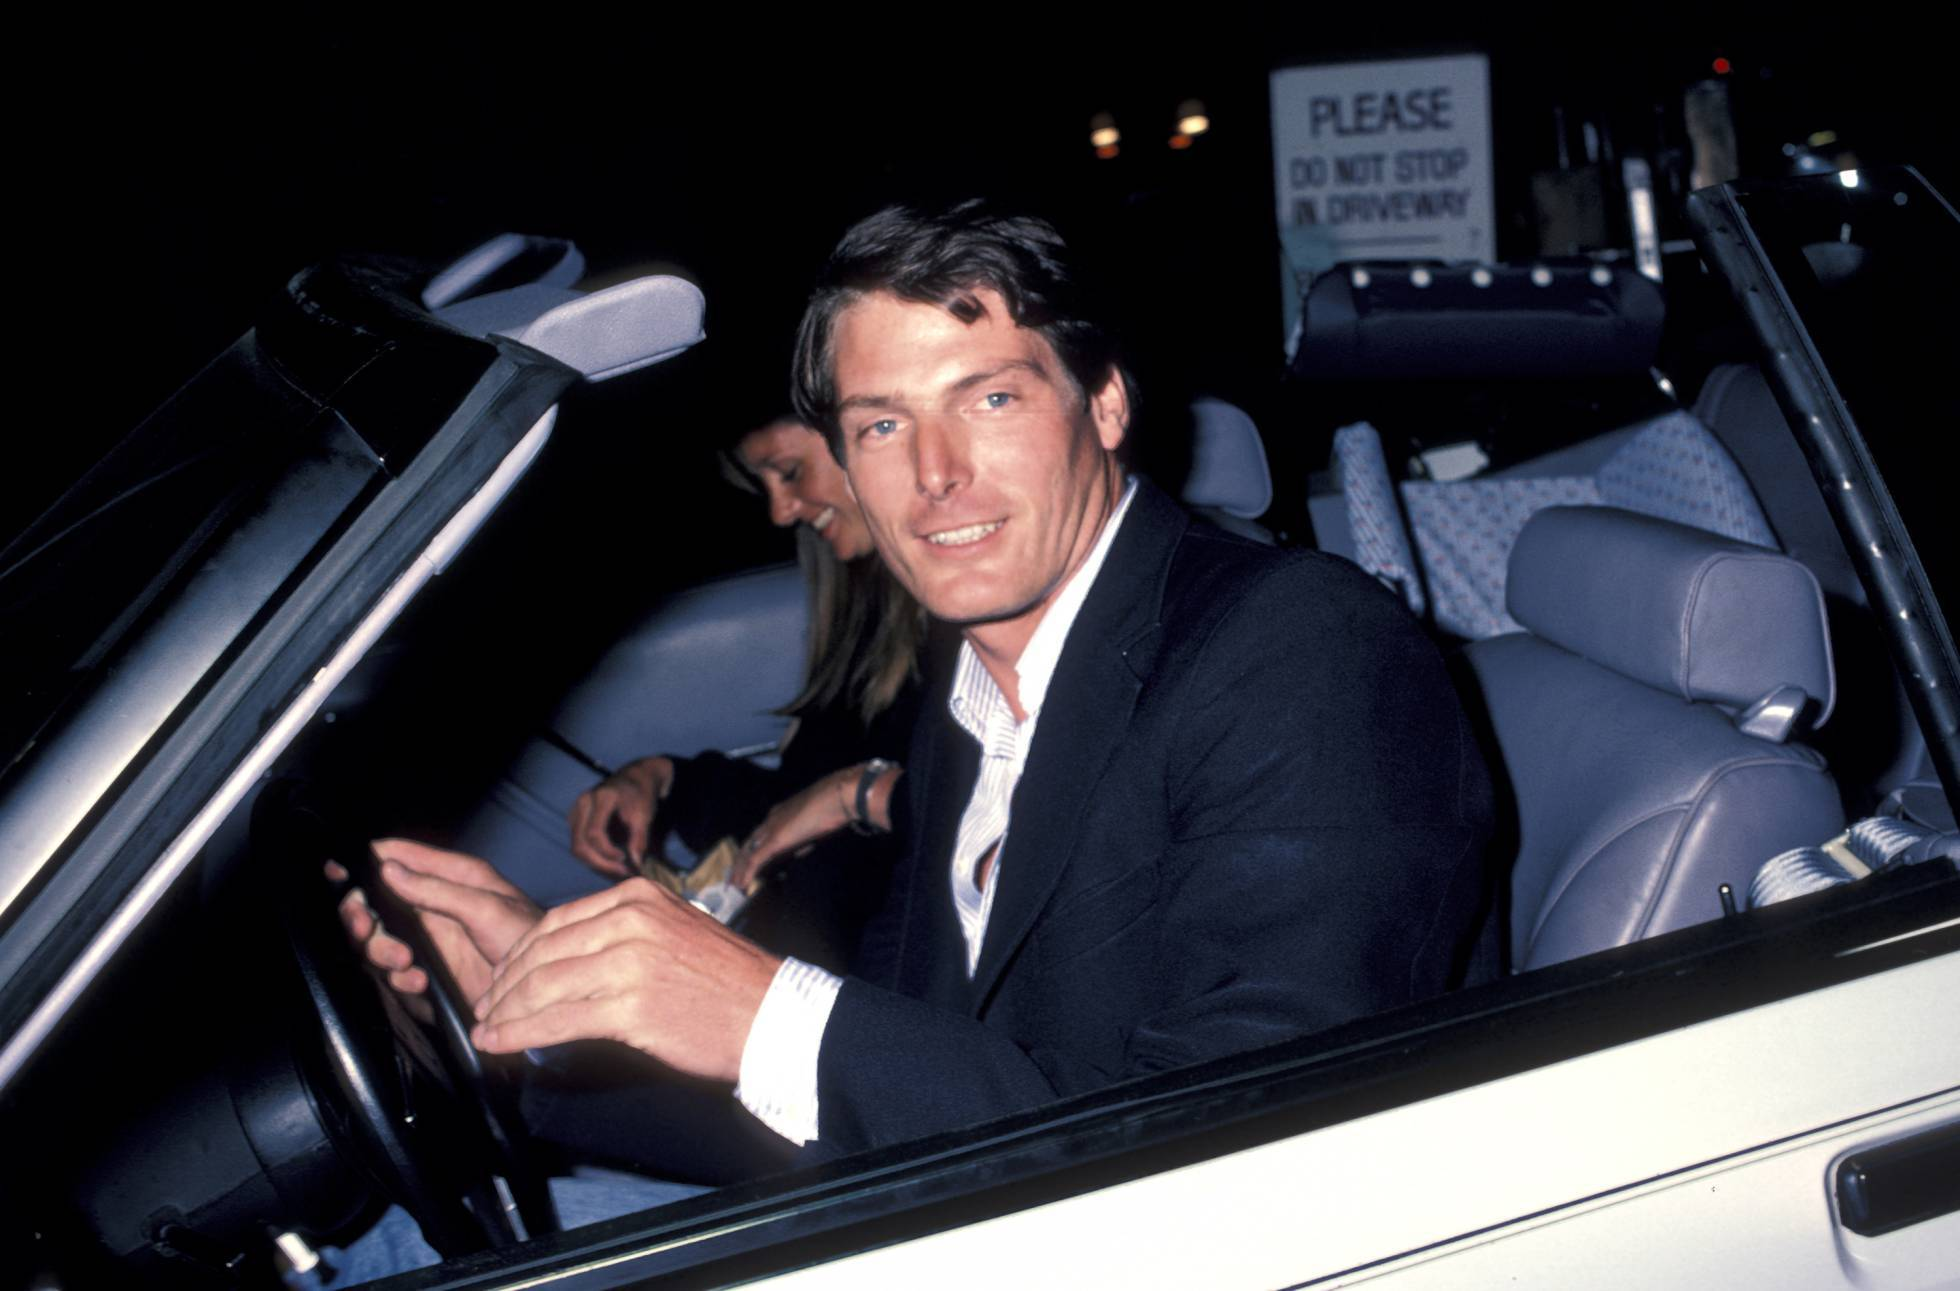 Christopher Reeve with his wife Gae Exton in 1984. Photo: Getty